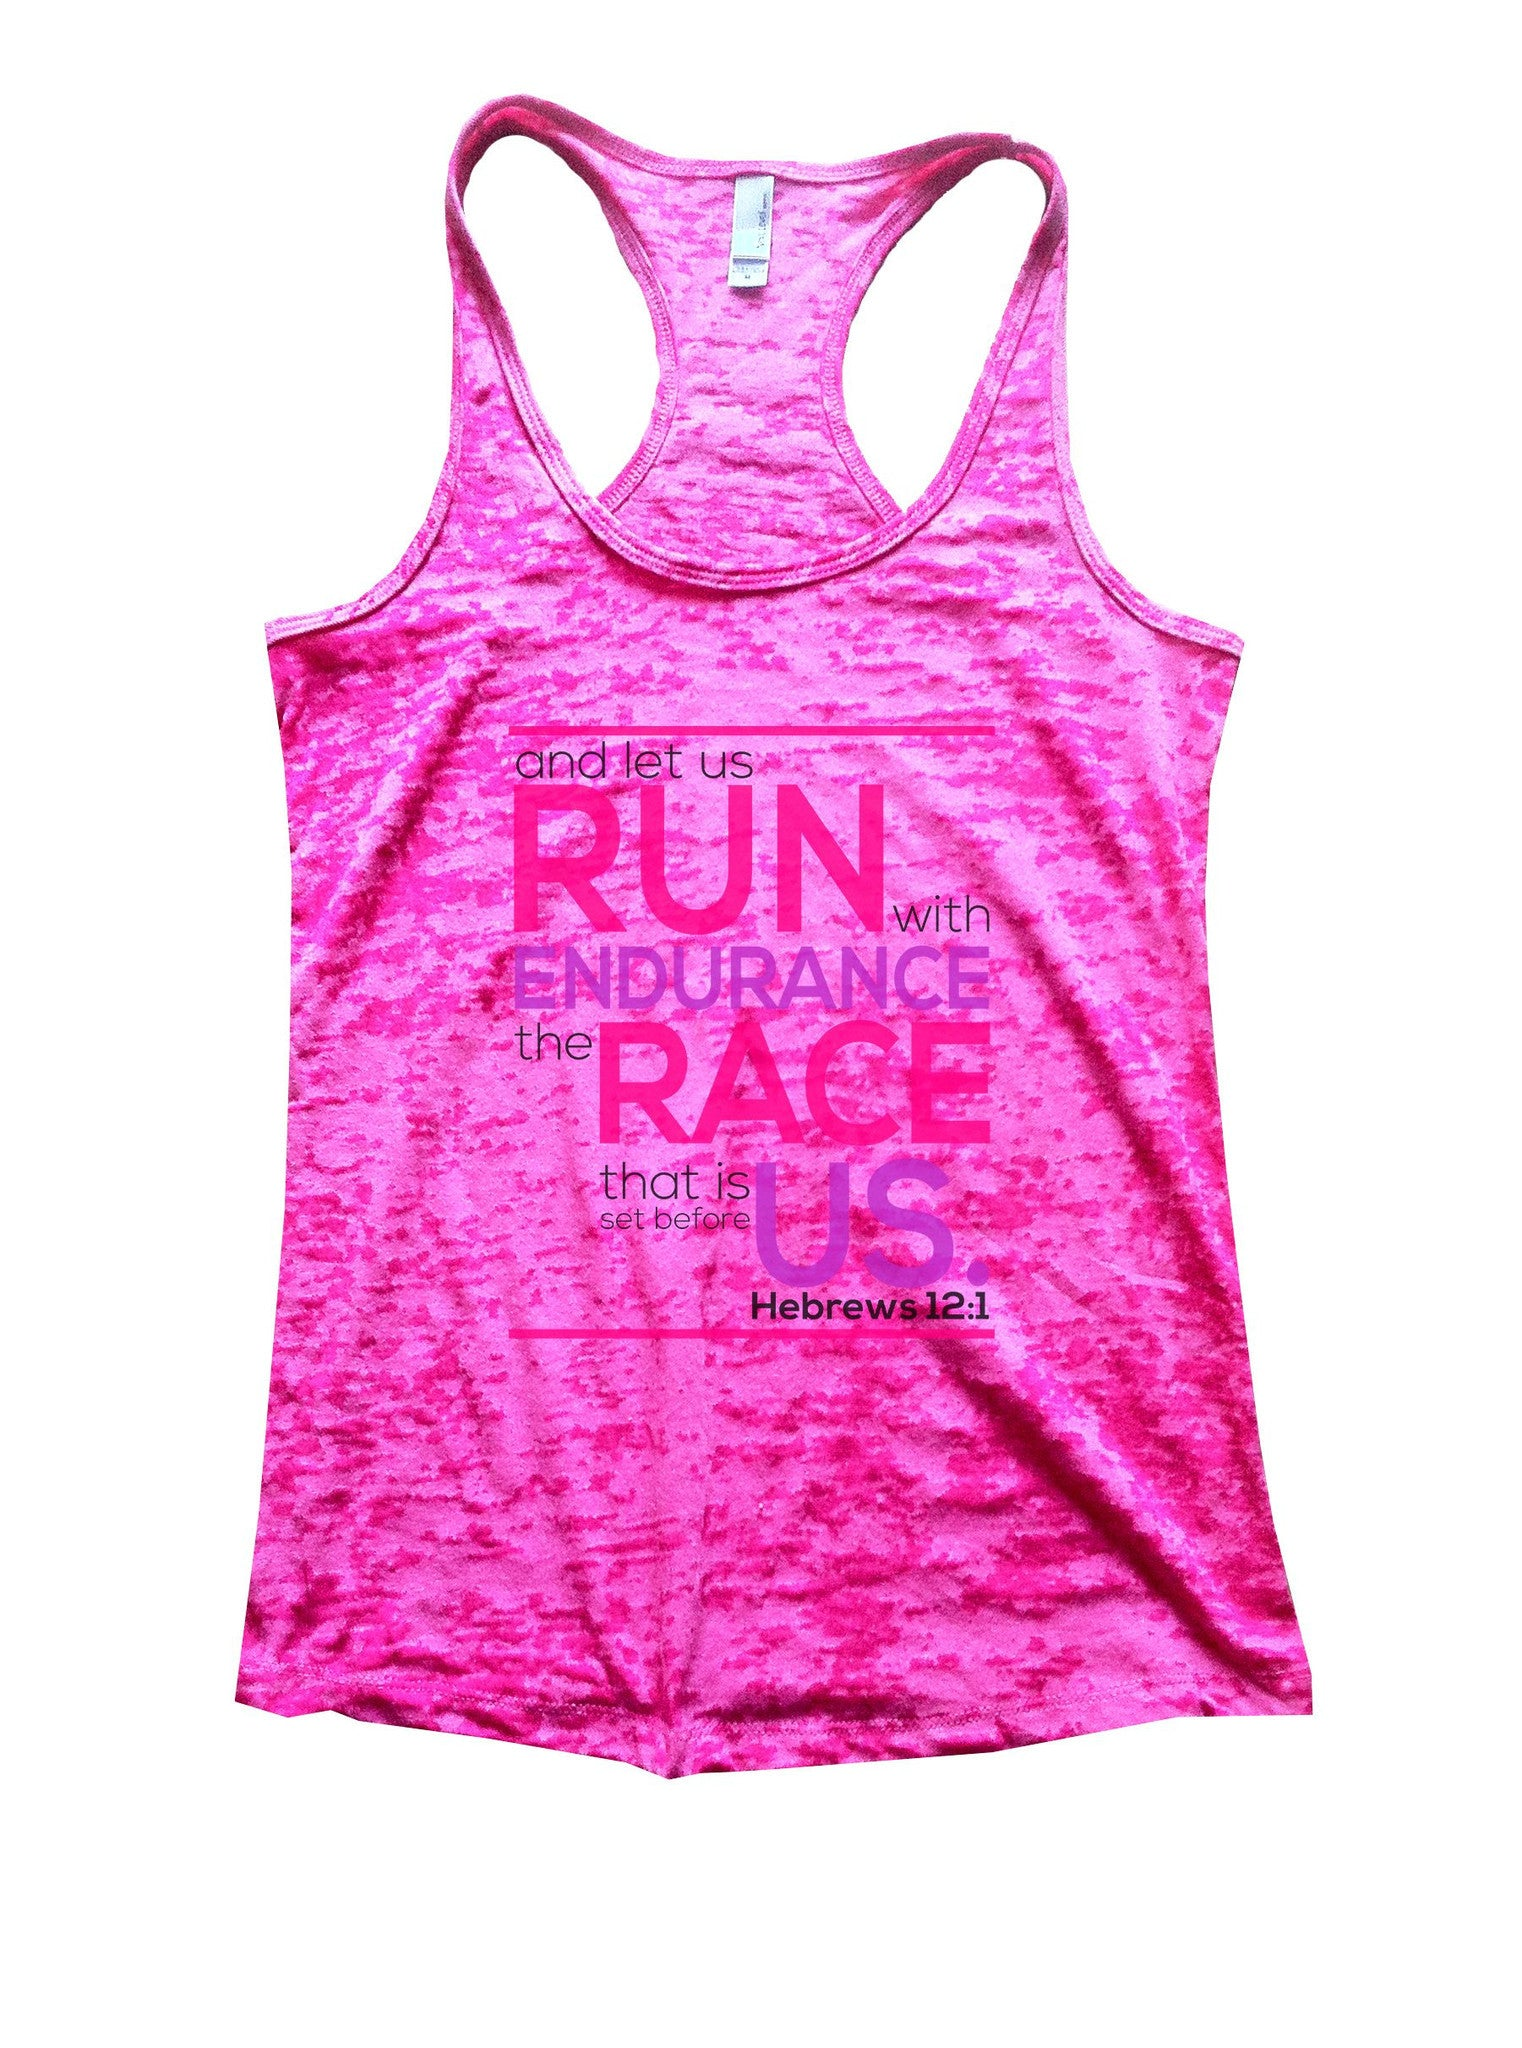 Run Endurance Race Us Burnout Tank Top By BurnoutTankTops.com - 1036 - Funny Shirts Tank Tops Burnouts and Triblends  - 5